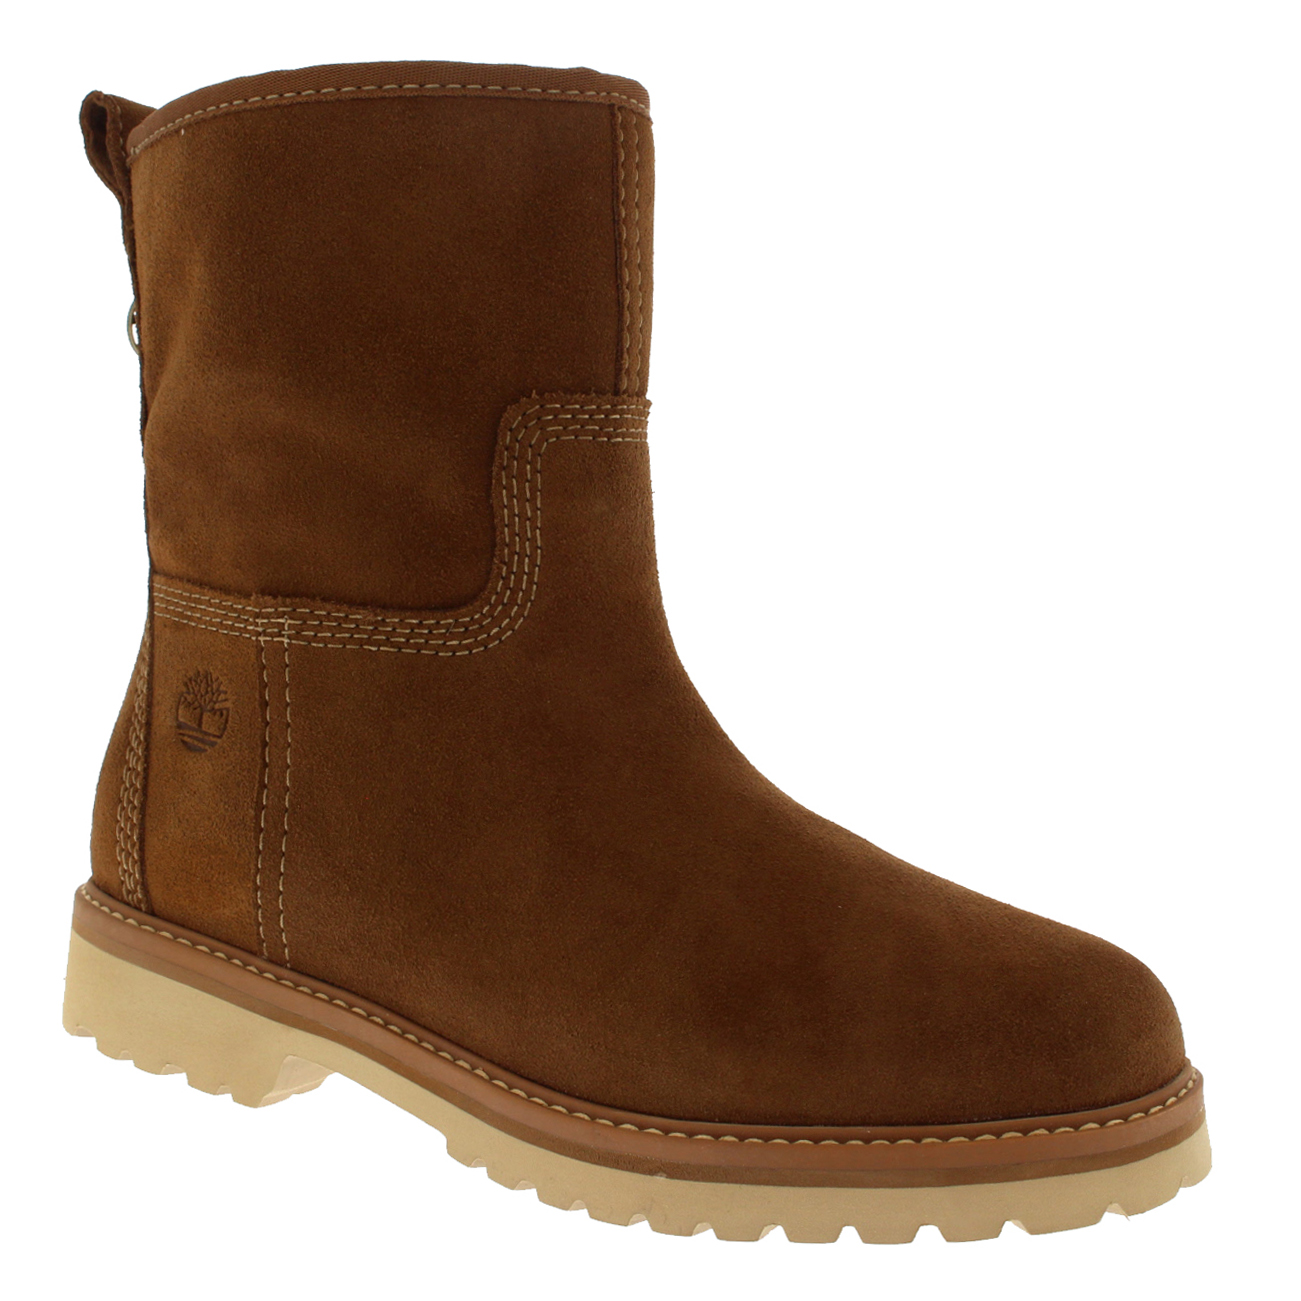 Details about Ladies Timberland Chamonix Valley Waterproof Casual Mid Calf Boots All Sizes